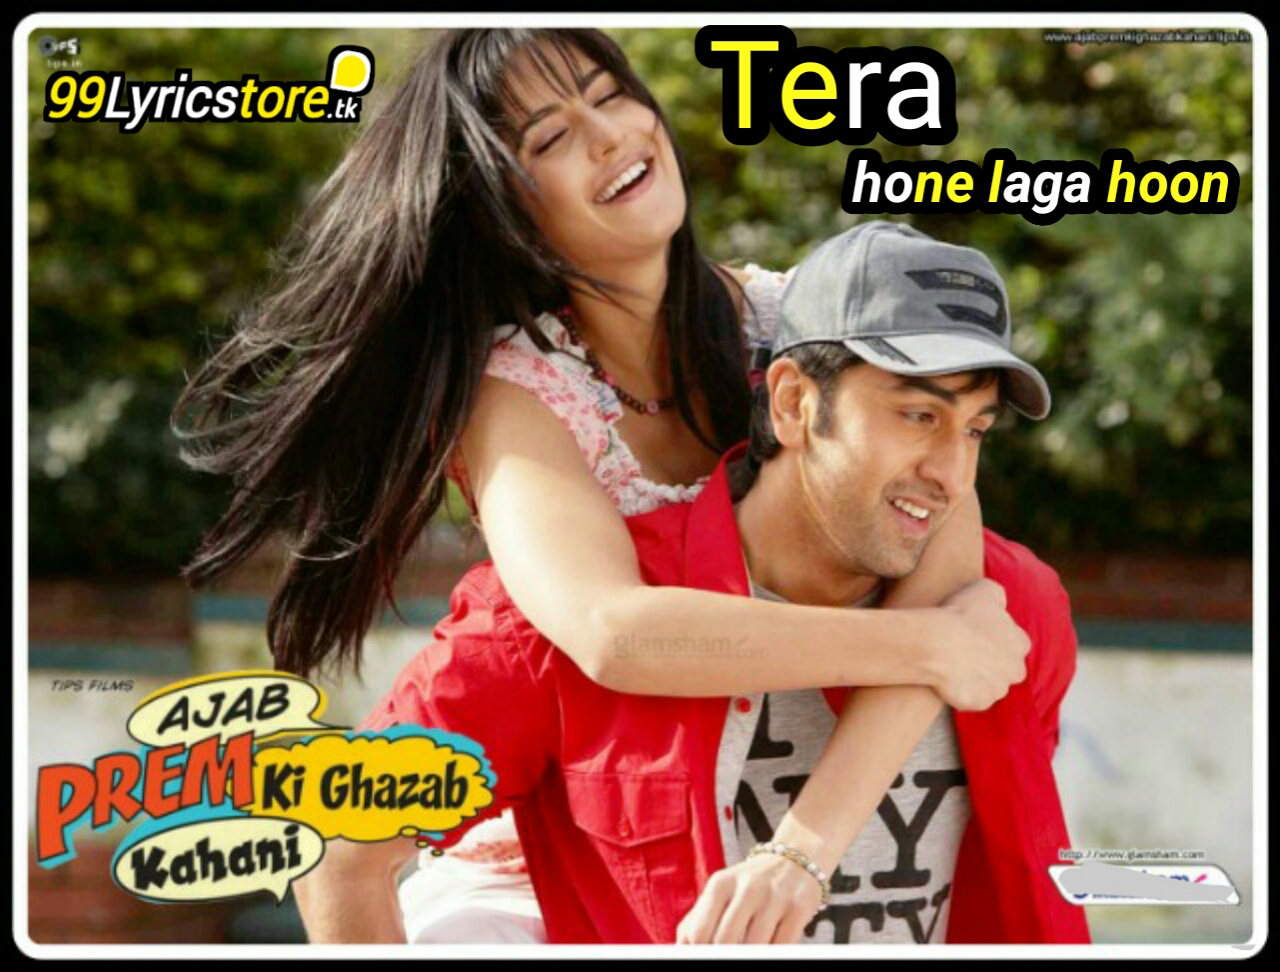 Tera Hone Laga Hoon Lyrics – Atif Aslam | Ajab Prem Ki Gajab Kahani | Pritam | Ranbir Kapoor & Katrina Kaif | Best Song Of Atif Aslam, Ajab Prem Ki Gajab Kahani Songs Lyrics, Ranbir Kapoor Top Songs Lyrics, Katrina Kaif Song Lyrics, Pritam Song Lyrics, Atif Aslam Hindi Song Lyrics